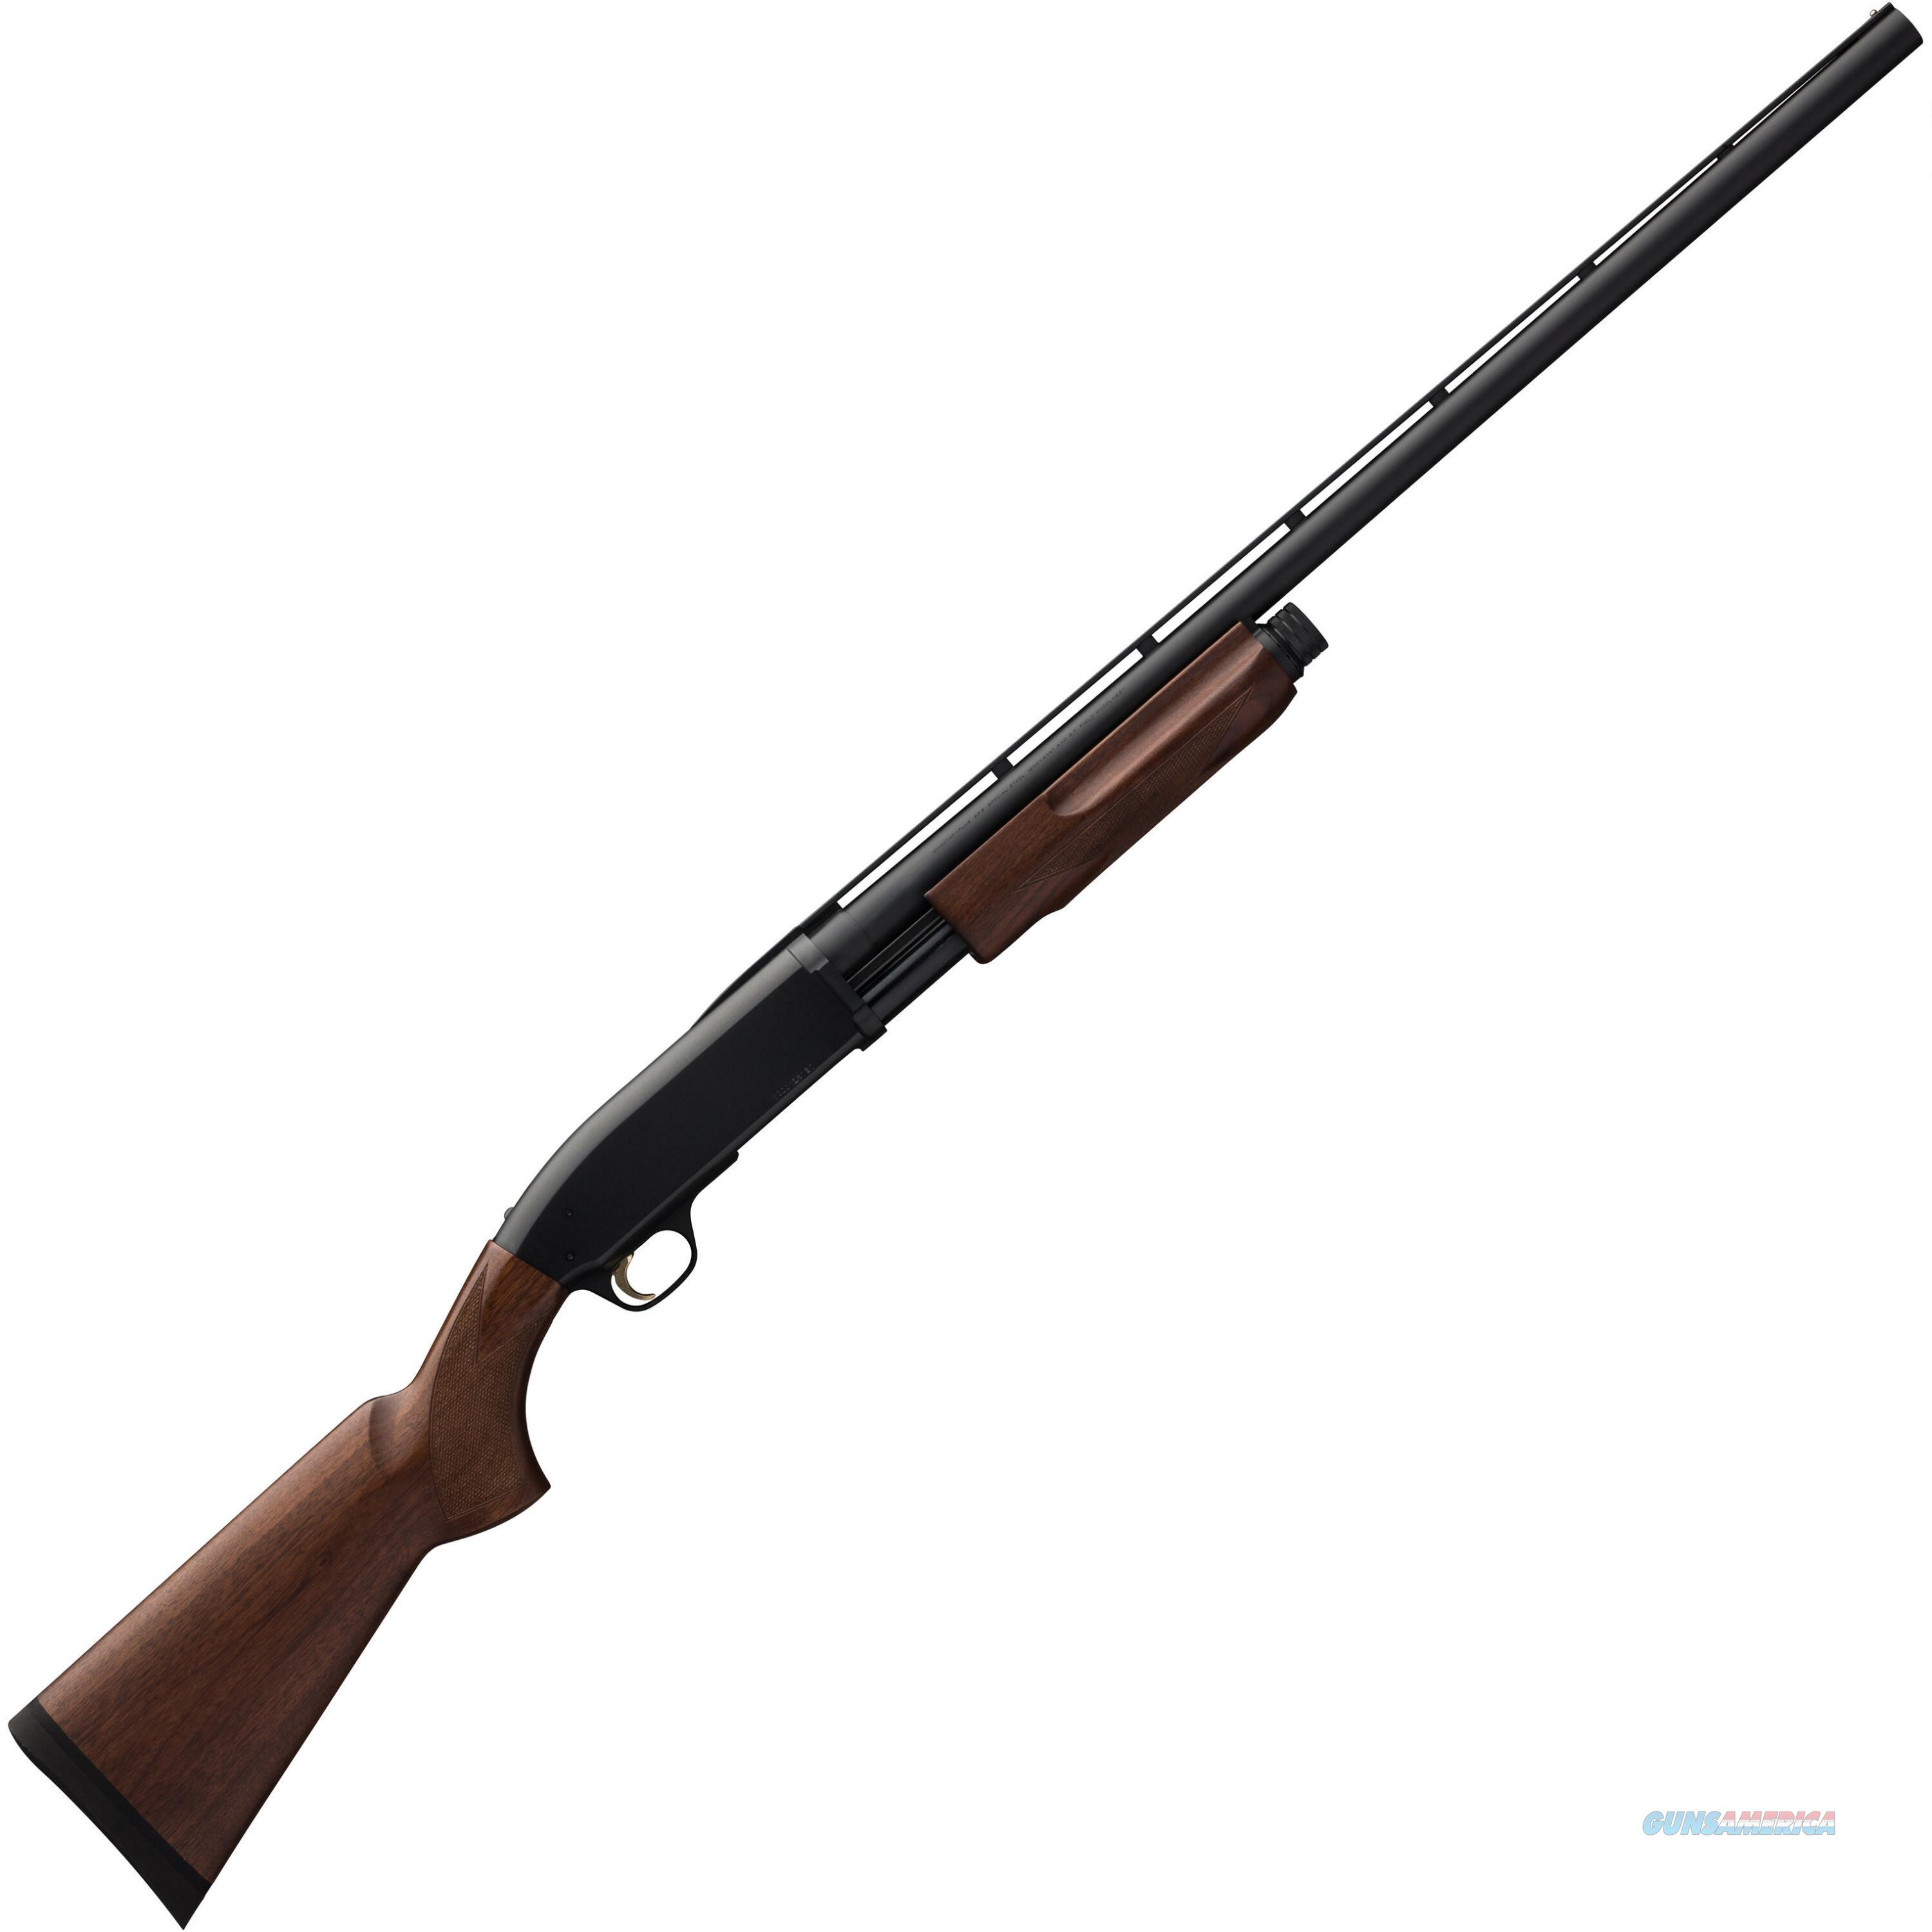 Browning BPS Field 12g 28in  Guns > Shotguns > Browning Shotguns > Pump Action > Hunting